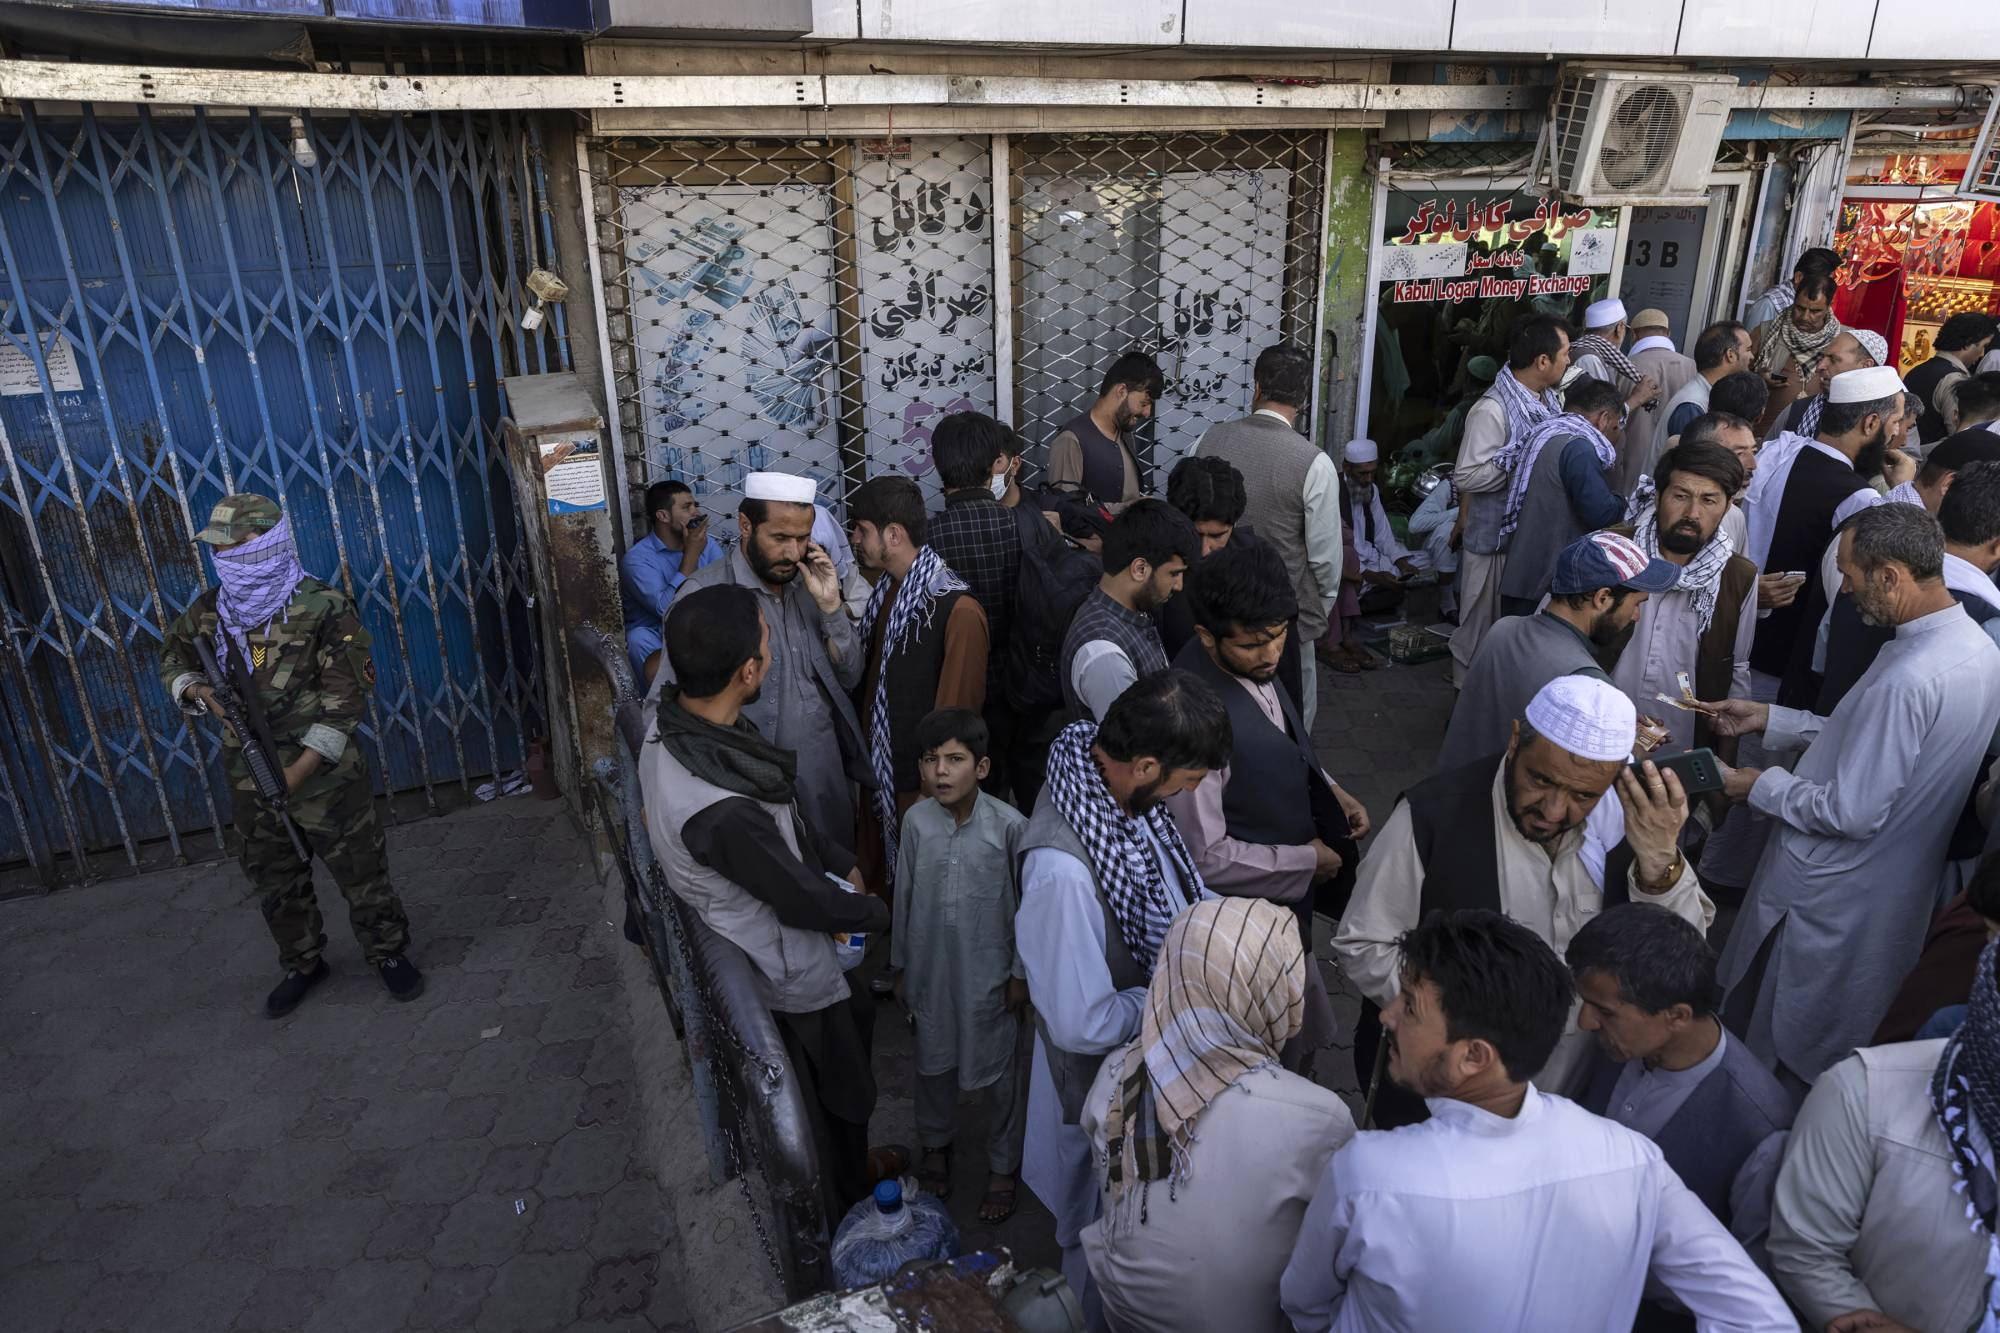 Crowds outside a currency exchange facility in Kabul on Aug. 26 as Taliban fighters stand guard   VICTOR J. BLUE / THE NEW YORK TIMES